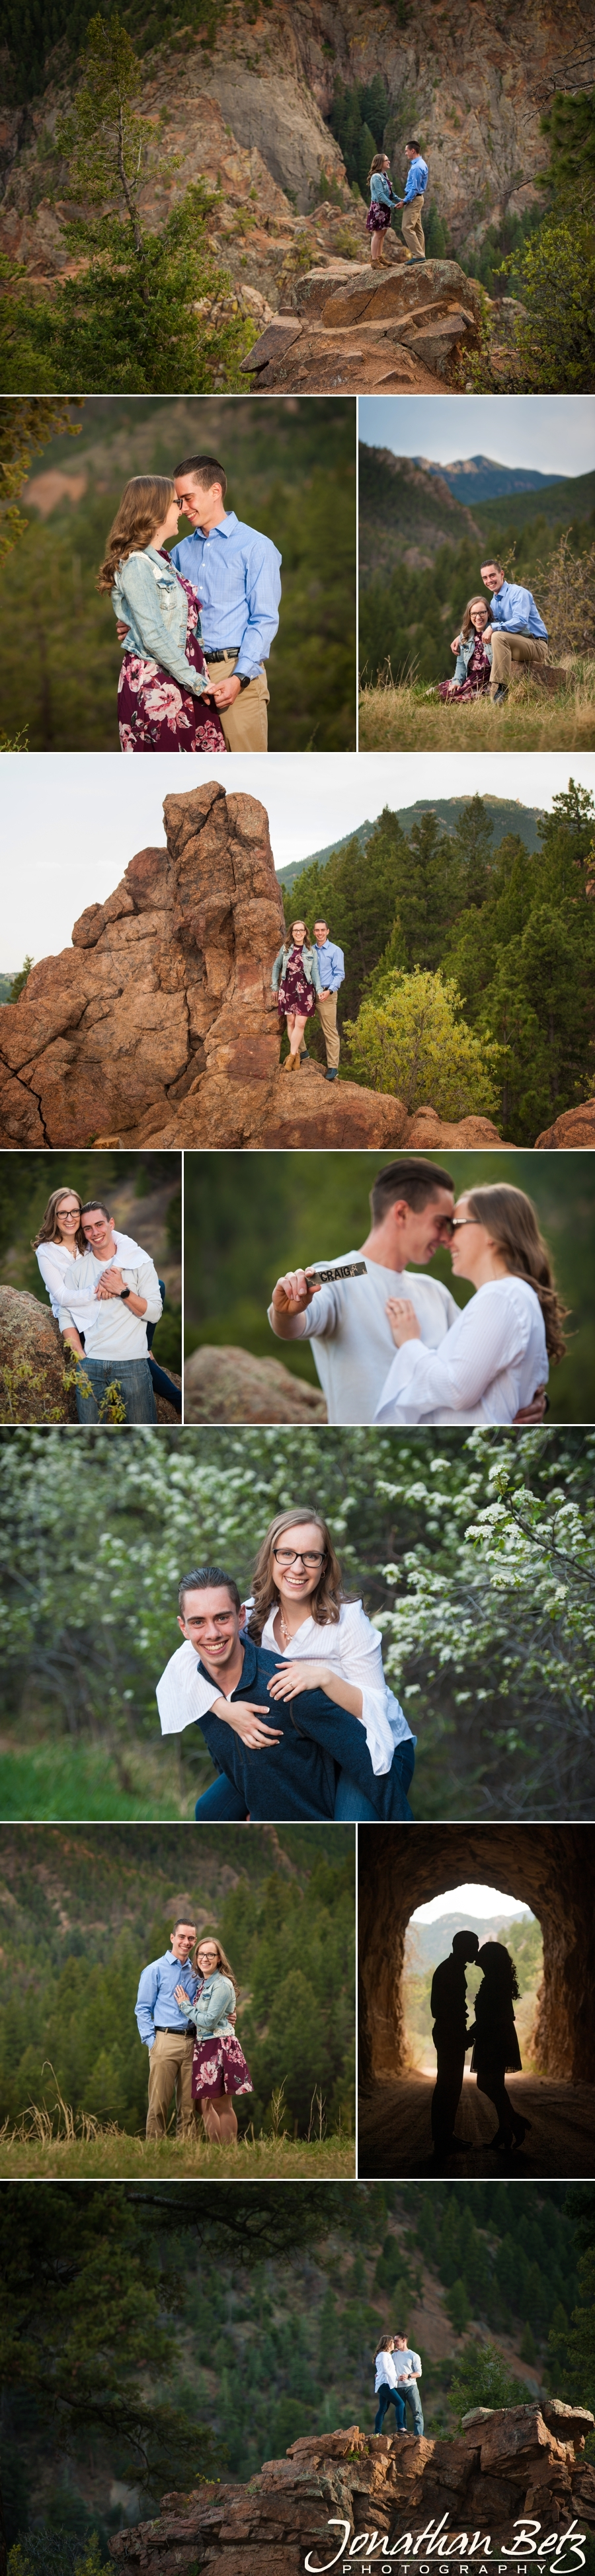 Colorado Springs Engagement Pictures Jonathan Betz Photography Wedding Photographer 1